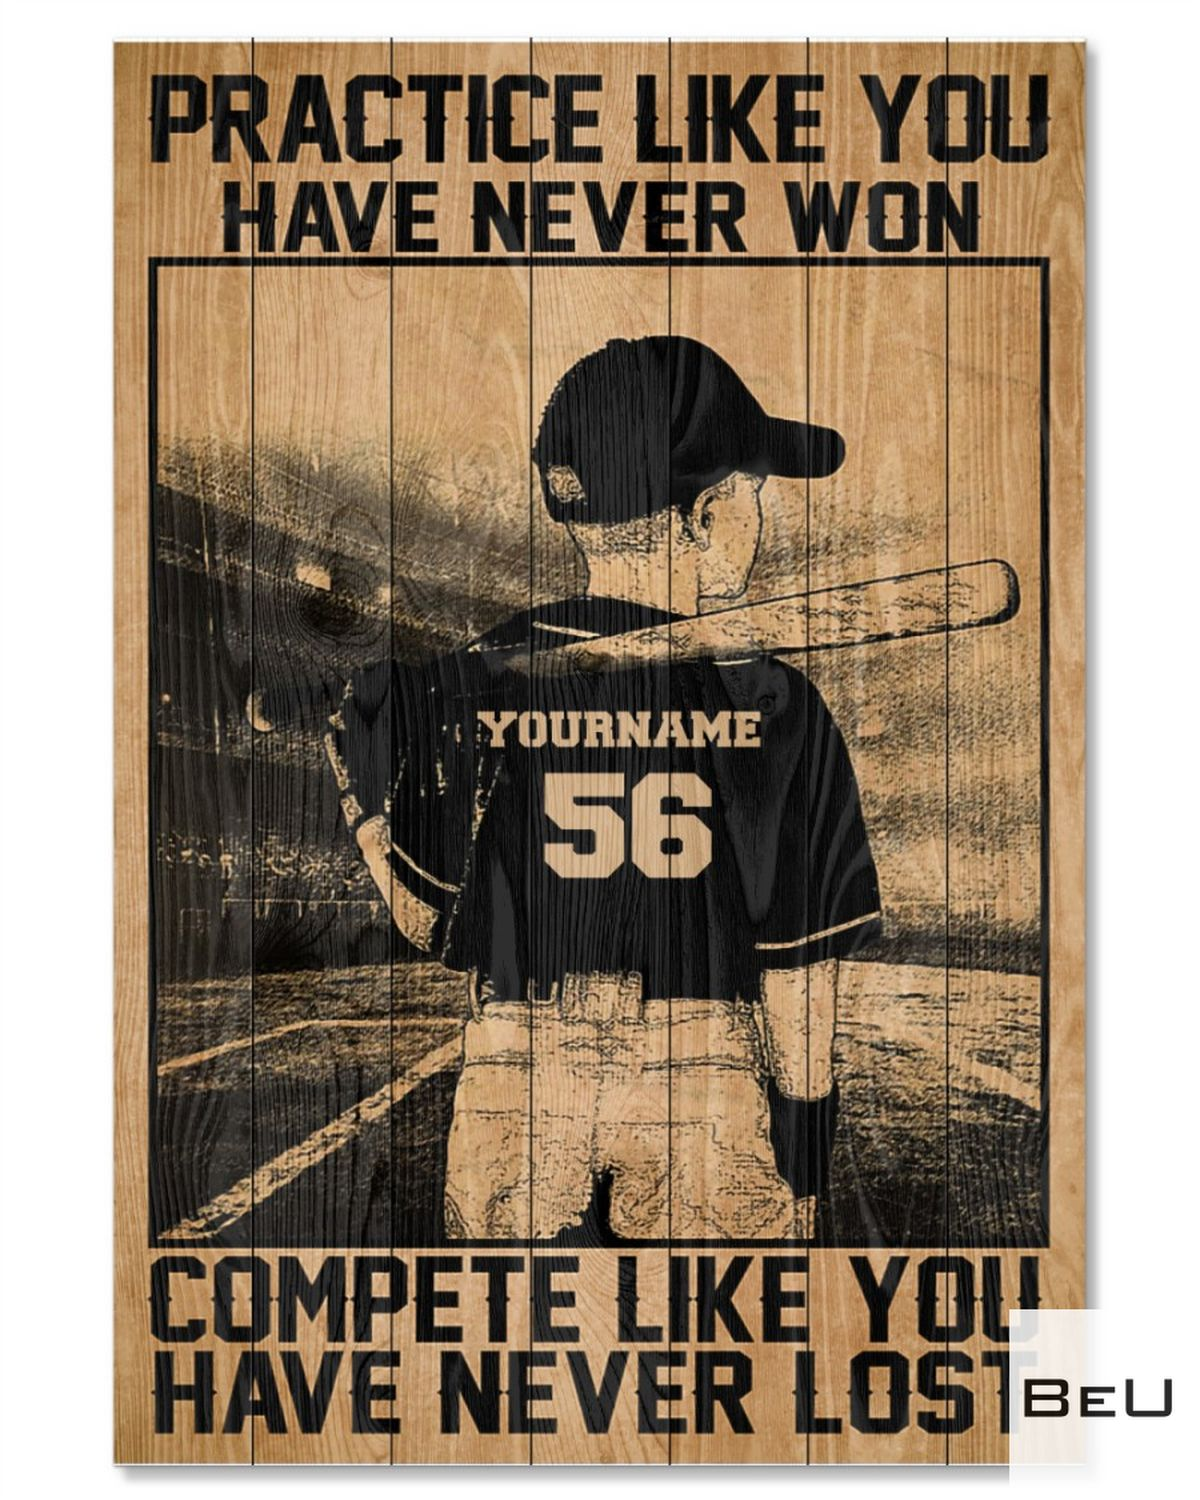 Personalized Practice Like You Have Never Won Basketball Poster